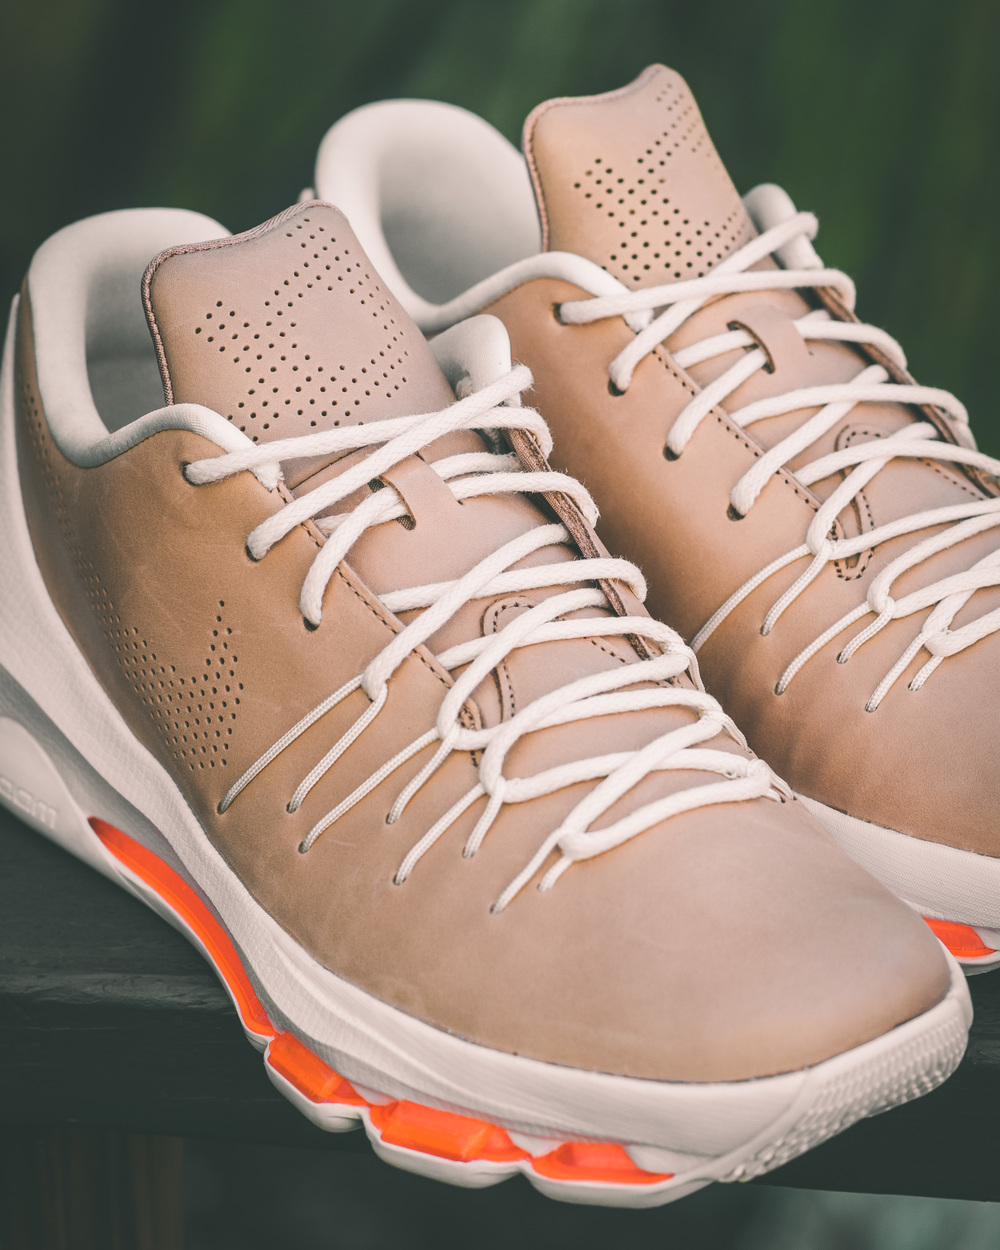 reputable site 6309b d5582 The warmer months are nearing and Nike is prepared with a new KD 8 EXT. The  fashion forward EXT line gives the court some space and dabbles into the ...